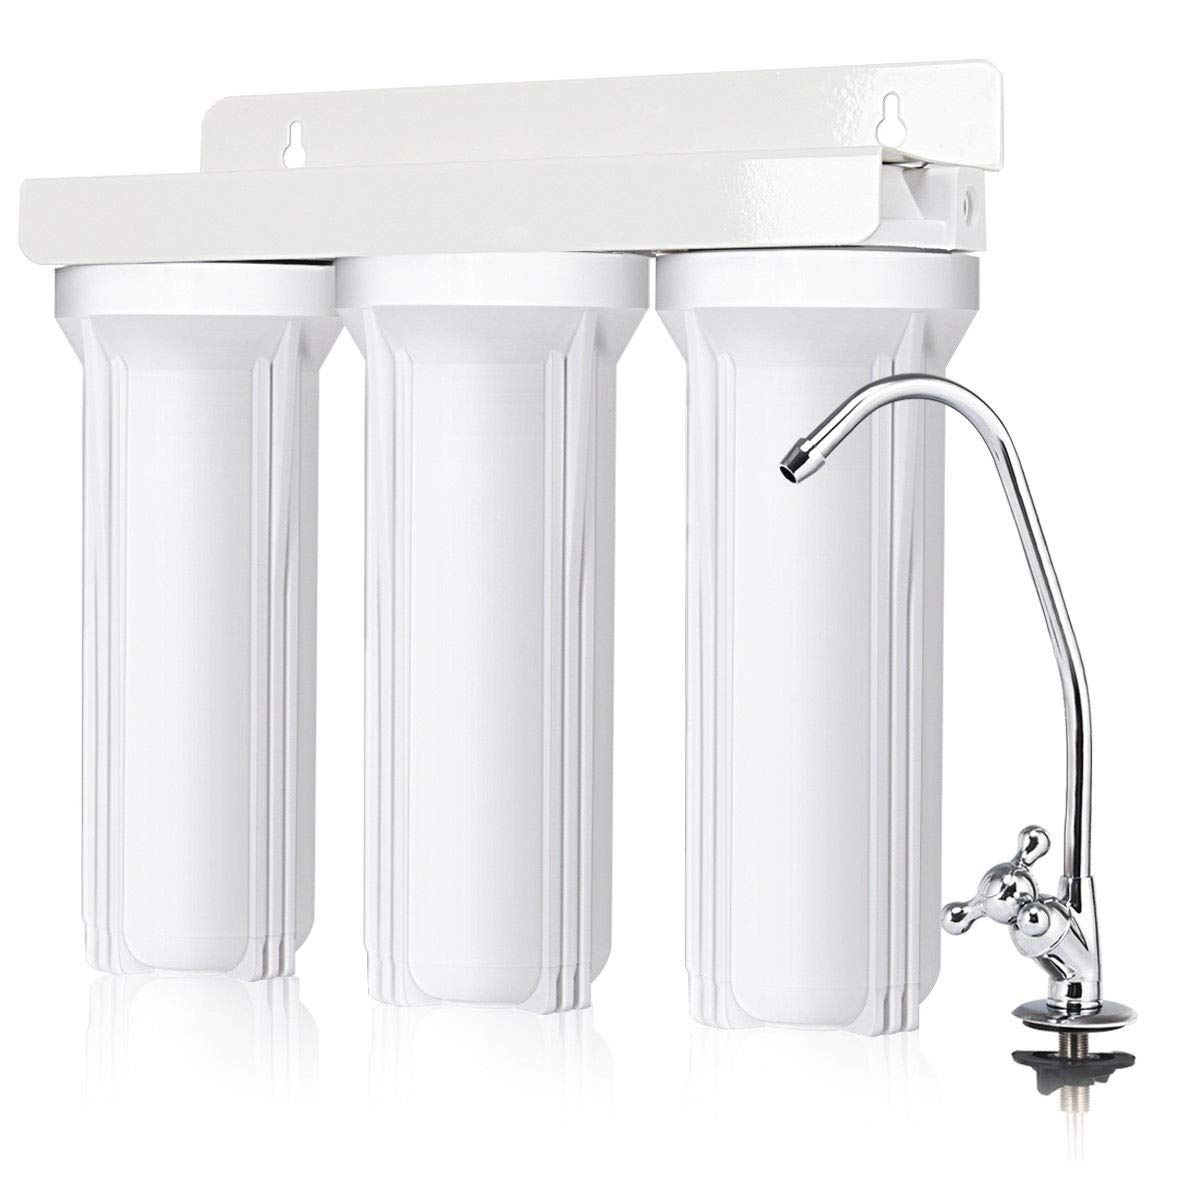 zwan 3-Stage Under-Sink Water Filter System with Chromed Faucet with Ebook